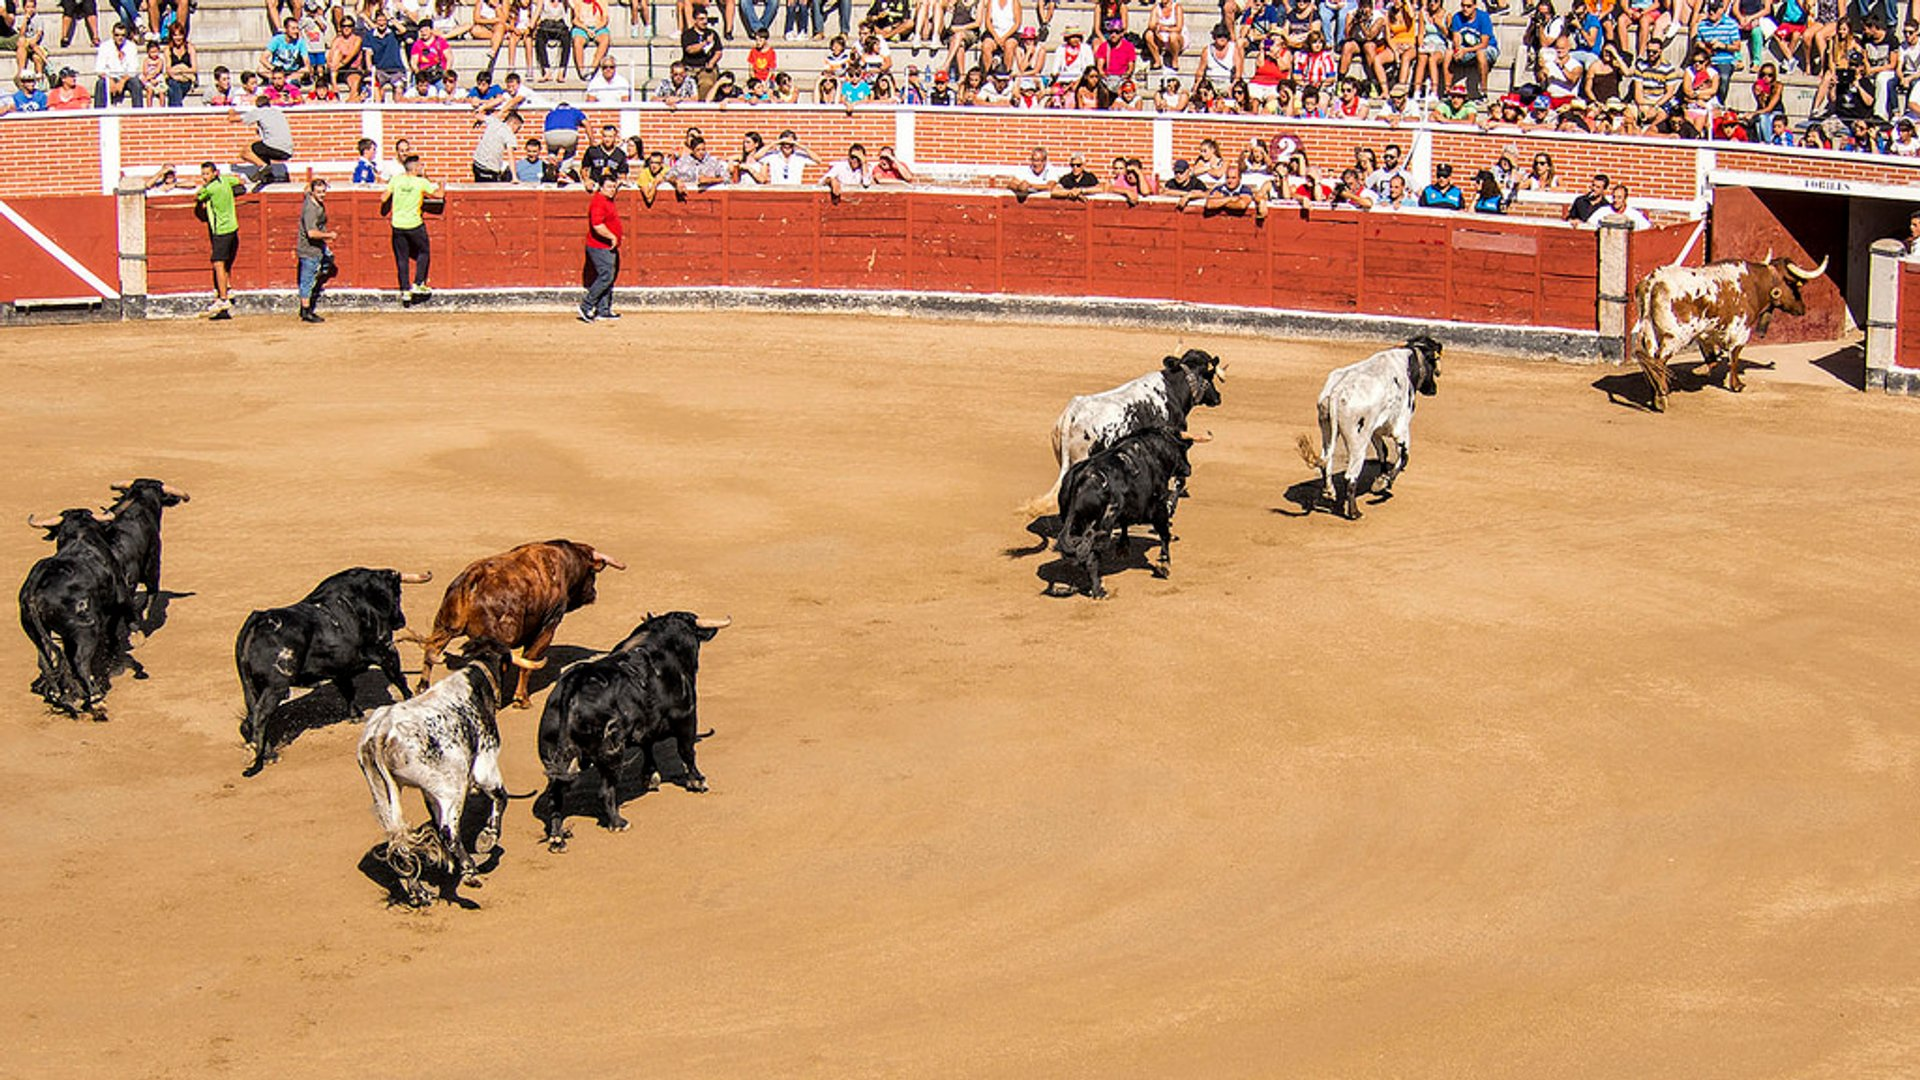 Best time for Bullfighting (Corrida de Toros)